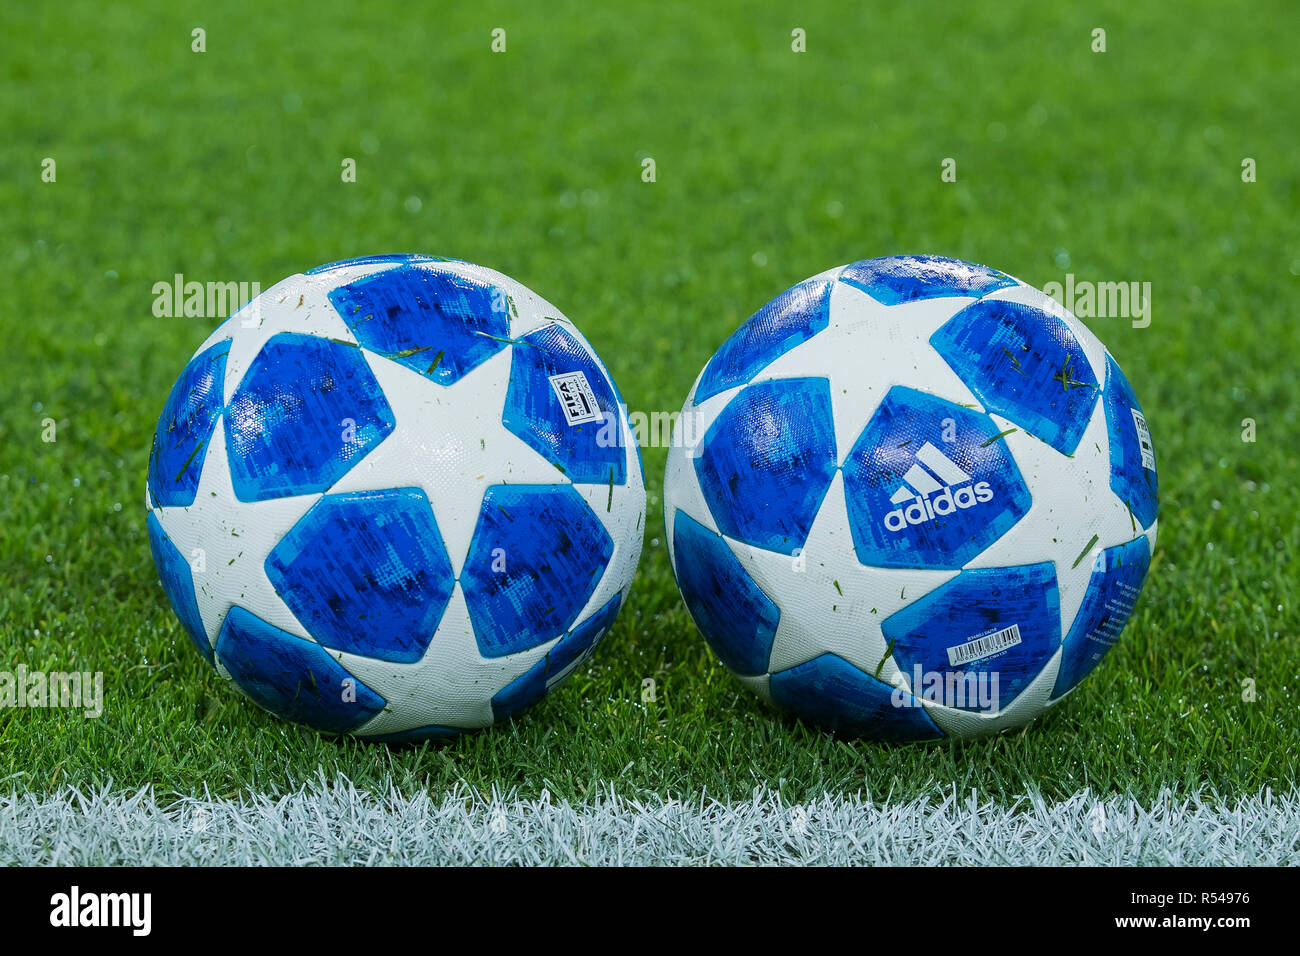 9+ Uefa Champions League Ball 2018